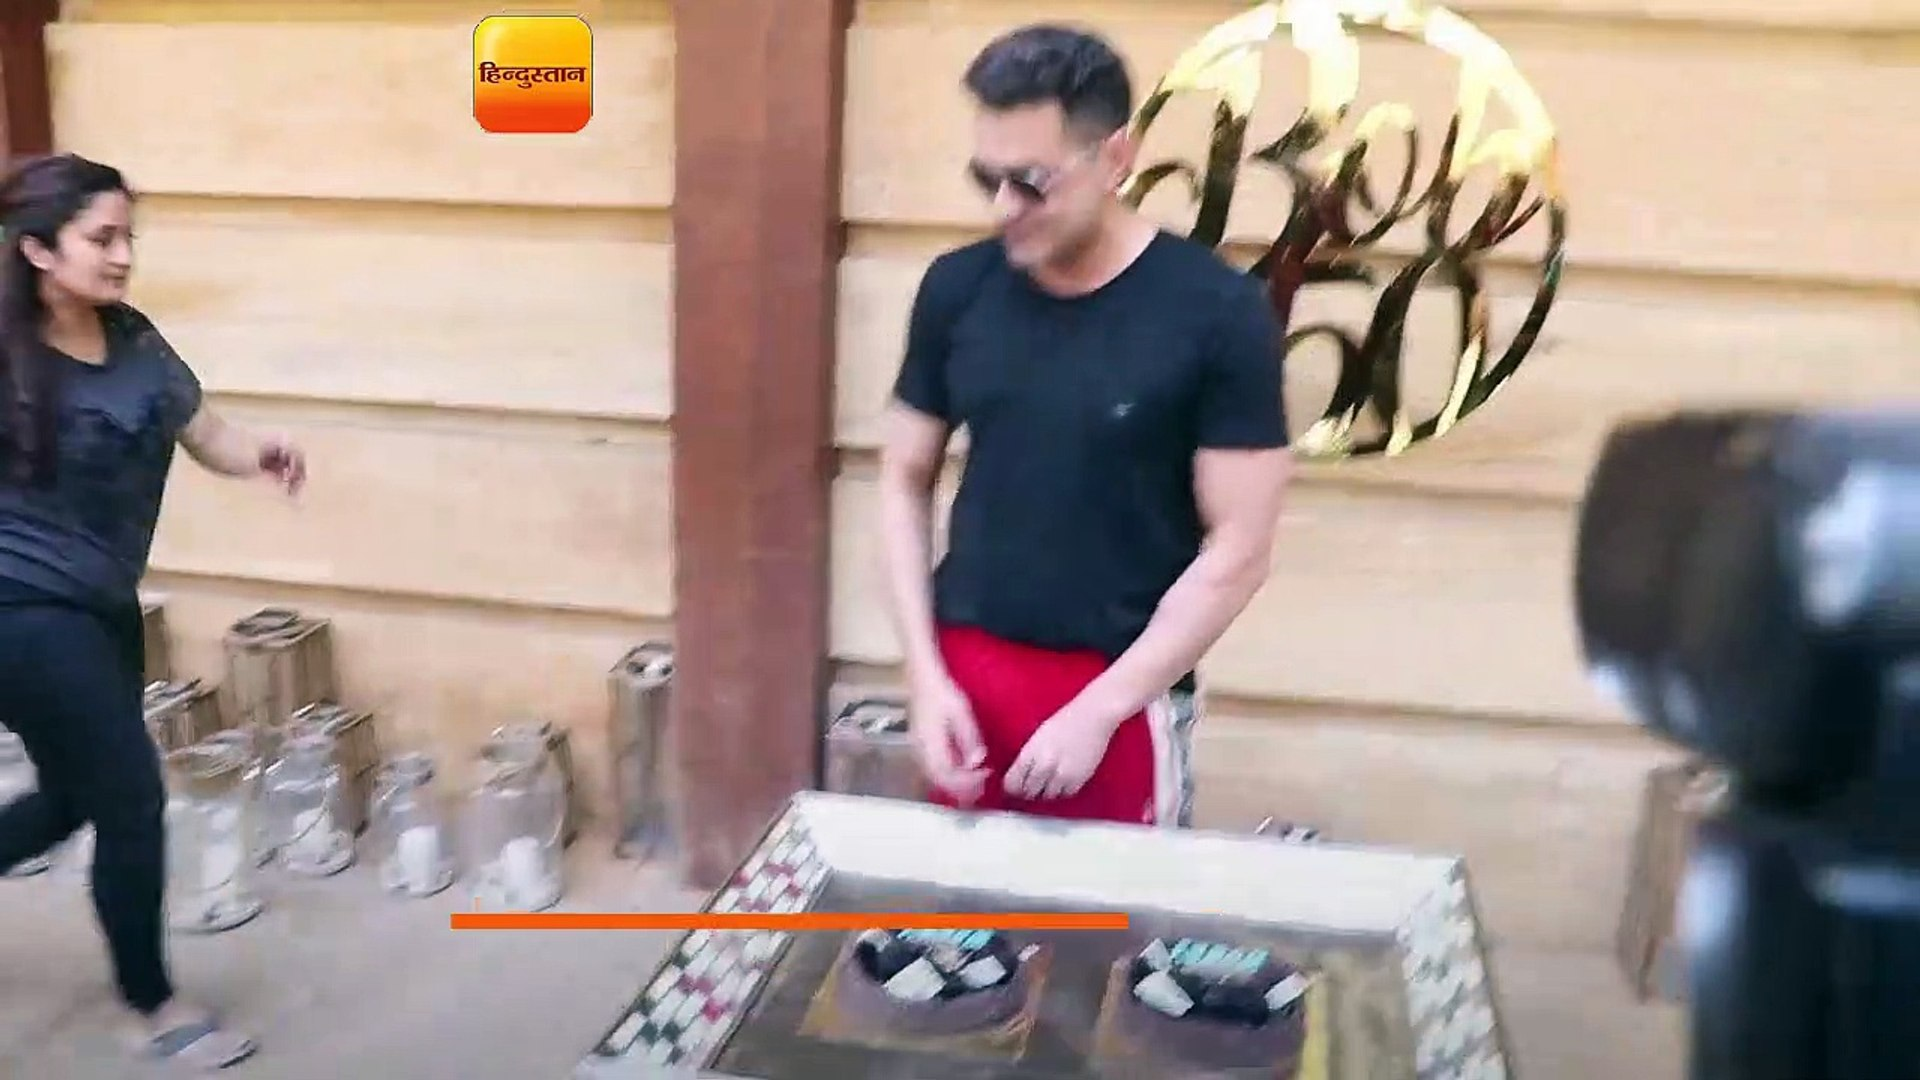 01- BOBBY DEOL BIRTHDAY CELEBRATION ON HIS BIG DAY TURNS 50 CAKE CUTTING